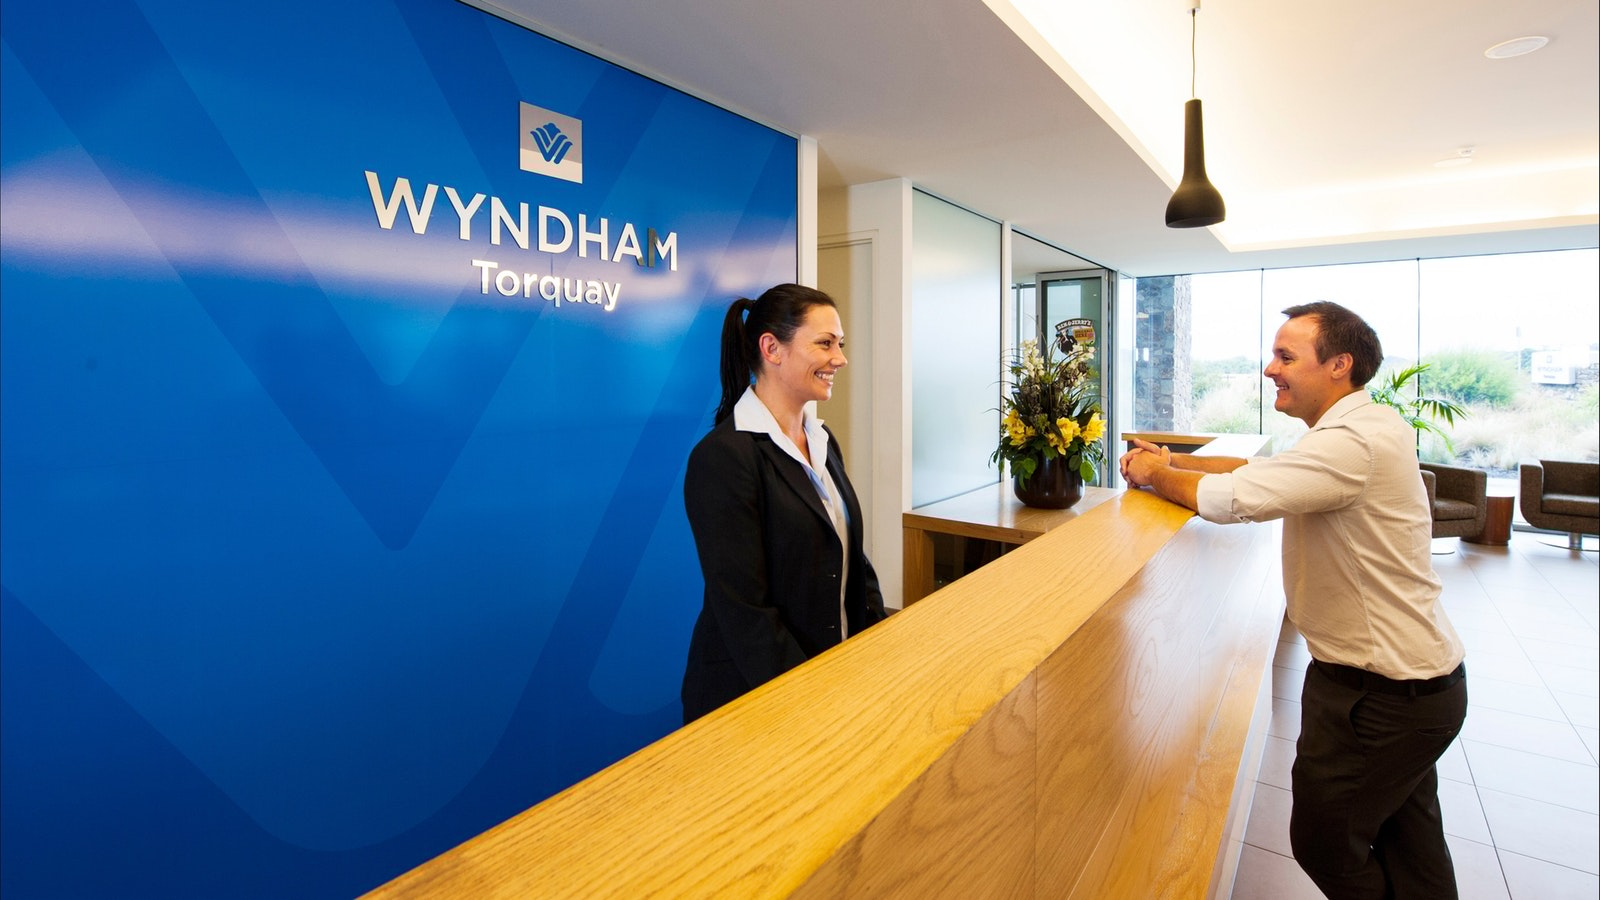 Wyndham Resort Torquay reception